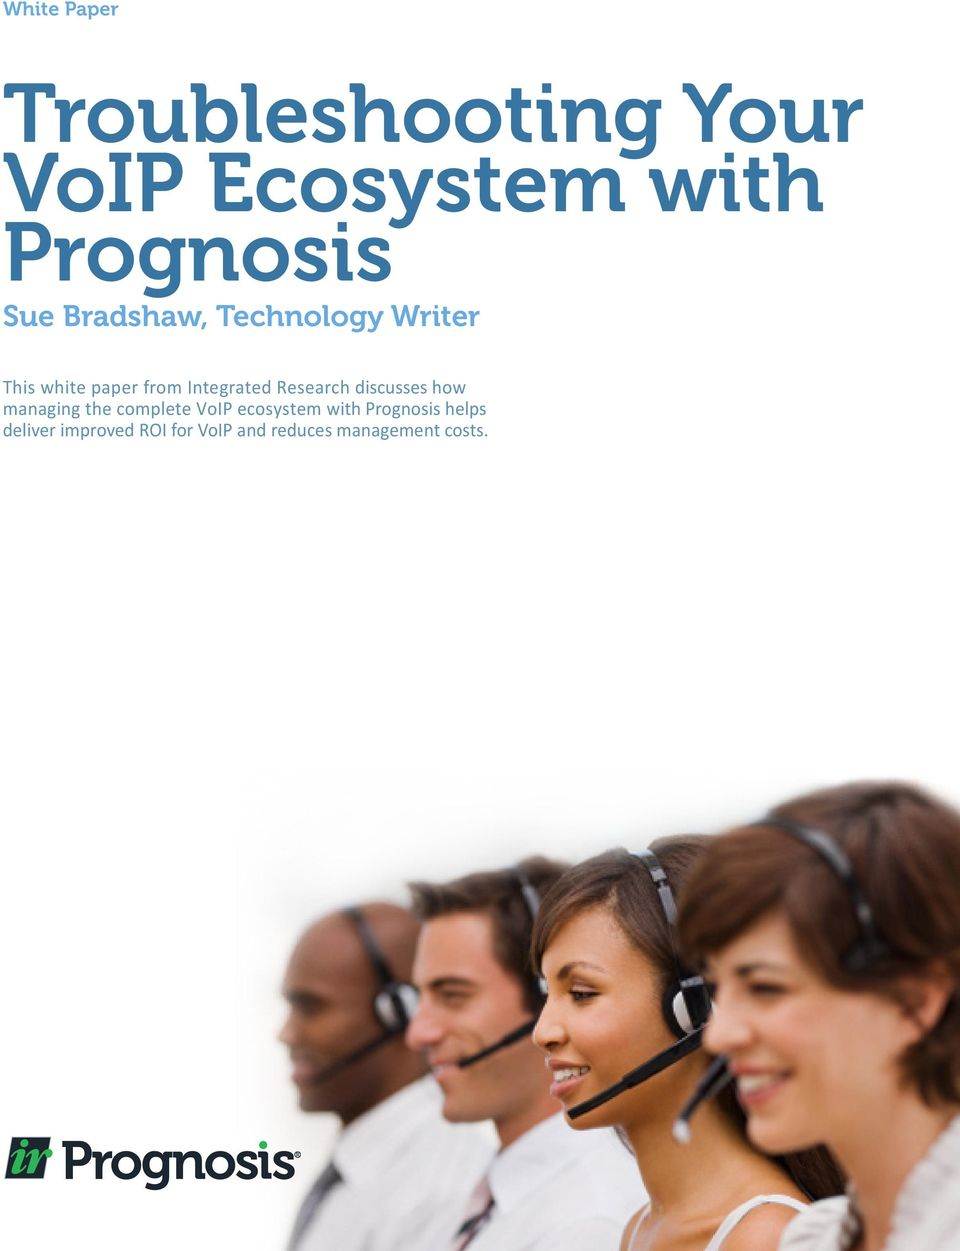 Research discusses how managing the complete VoIP ecosystem with